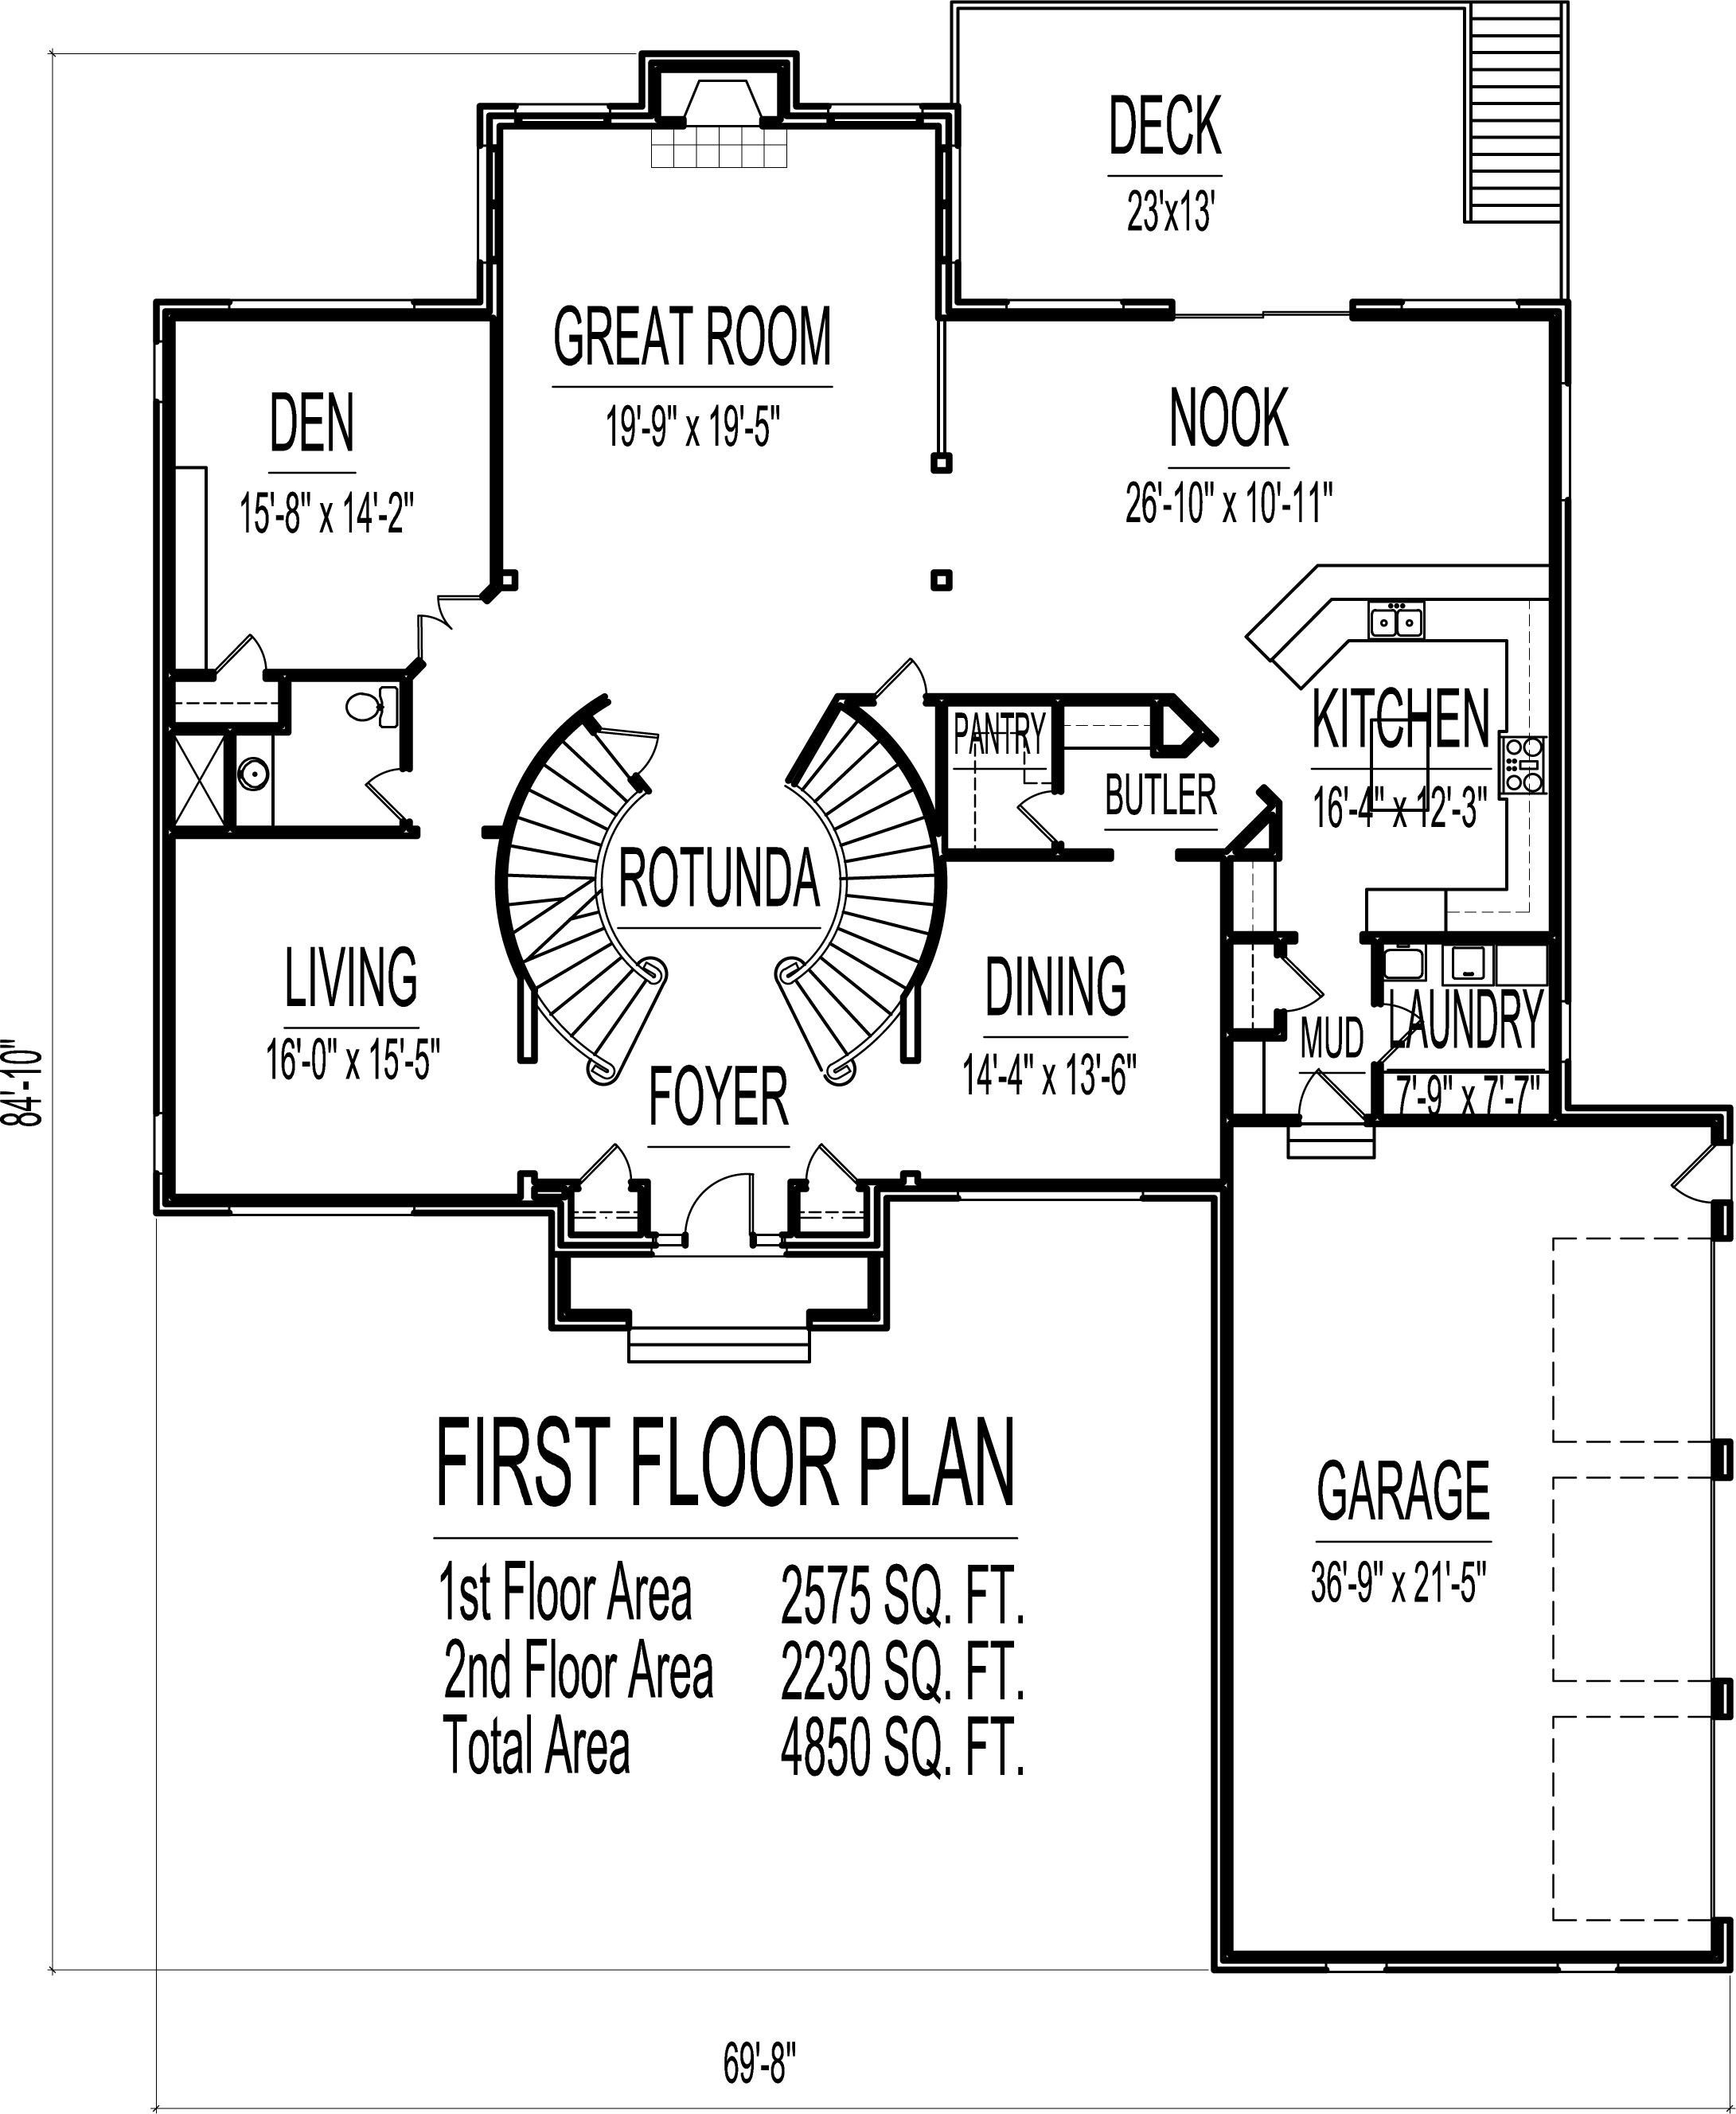 4 bedroom 2 story house plans 4500 sq ft chicago peoria for 4500 sq ft home